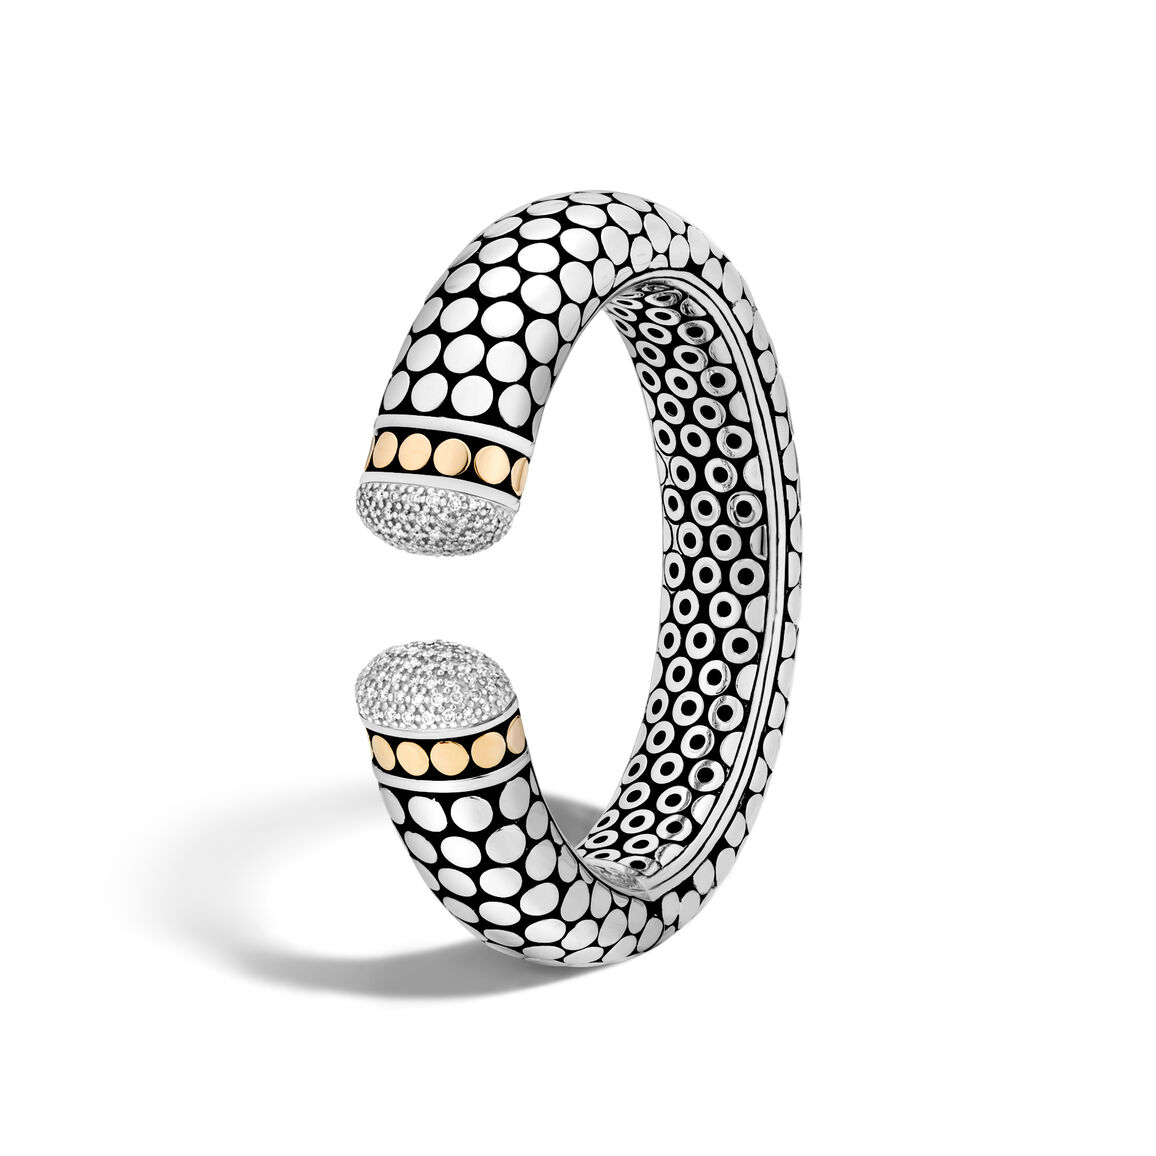 Dot 17.5MM Kick Cuff in Silver and 18K Gold with Diamonds